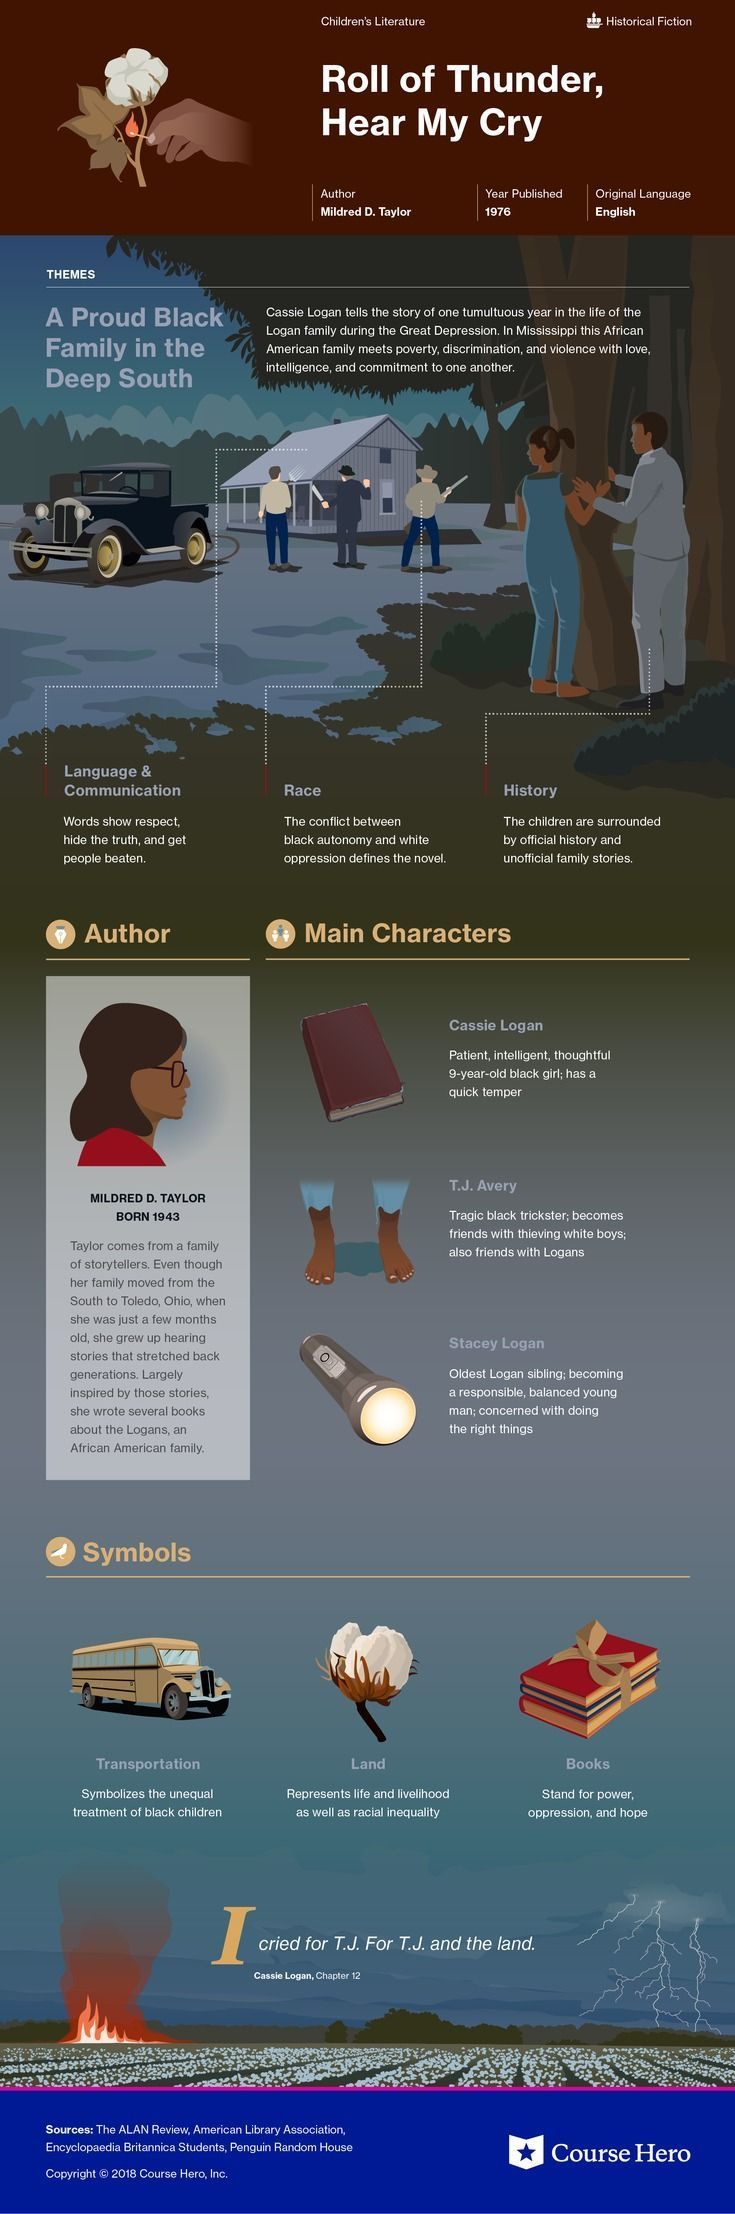 This coursehero infographic on roll of thunder hear my